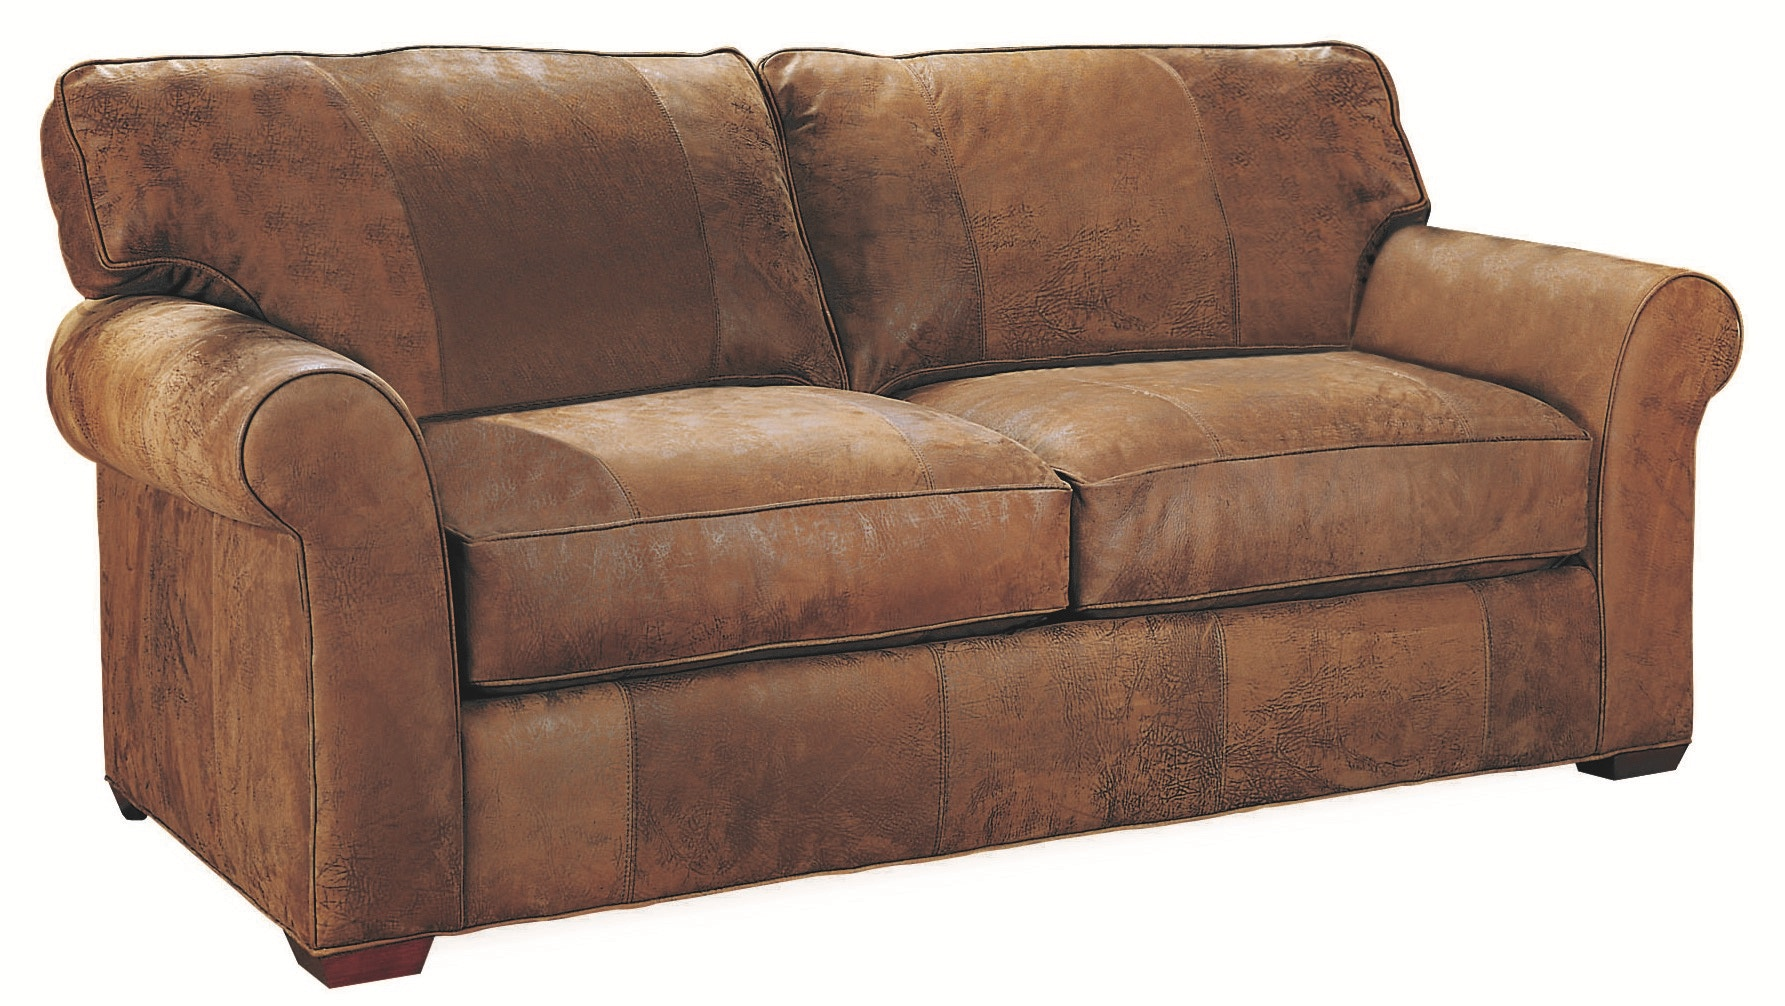 Lee Industries Living Room Leather Apartment Sofa L7117 11 At Exotic Home  Coastal Outlet